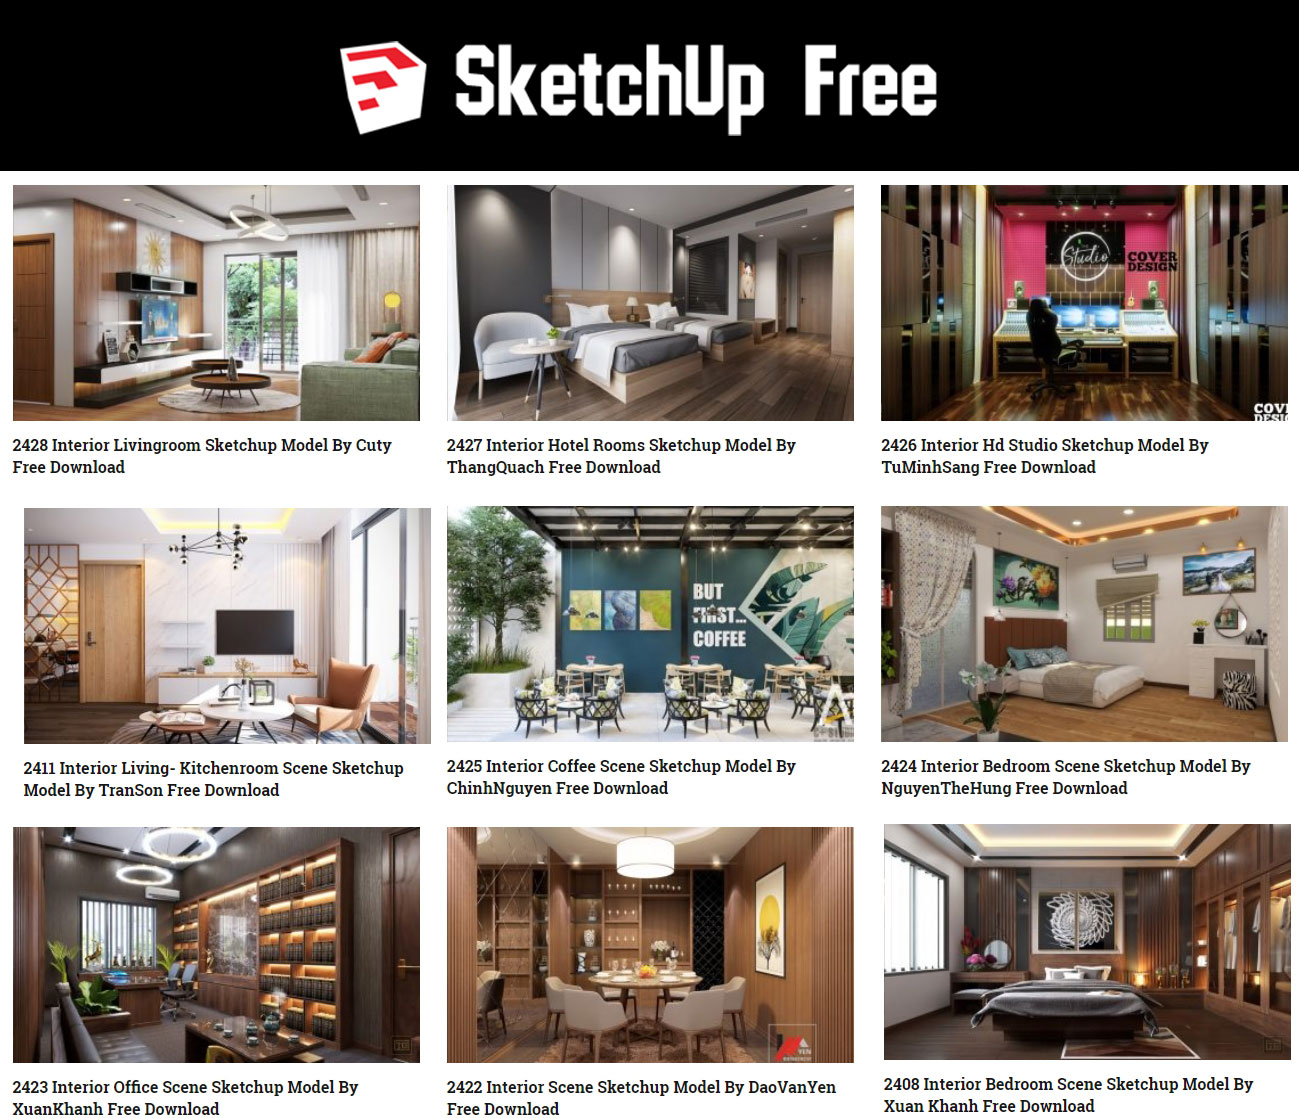 Free Download Sketchup Models For Architecture, 3d Ware